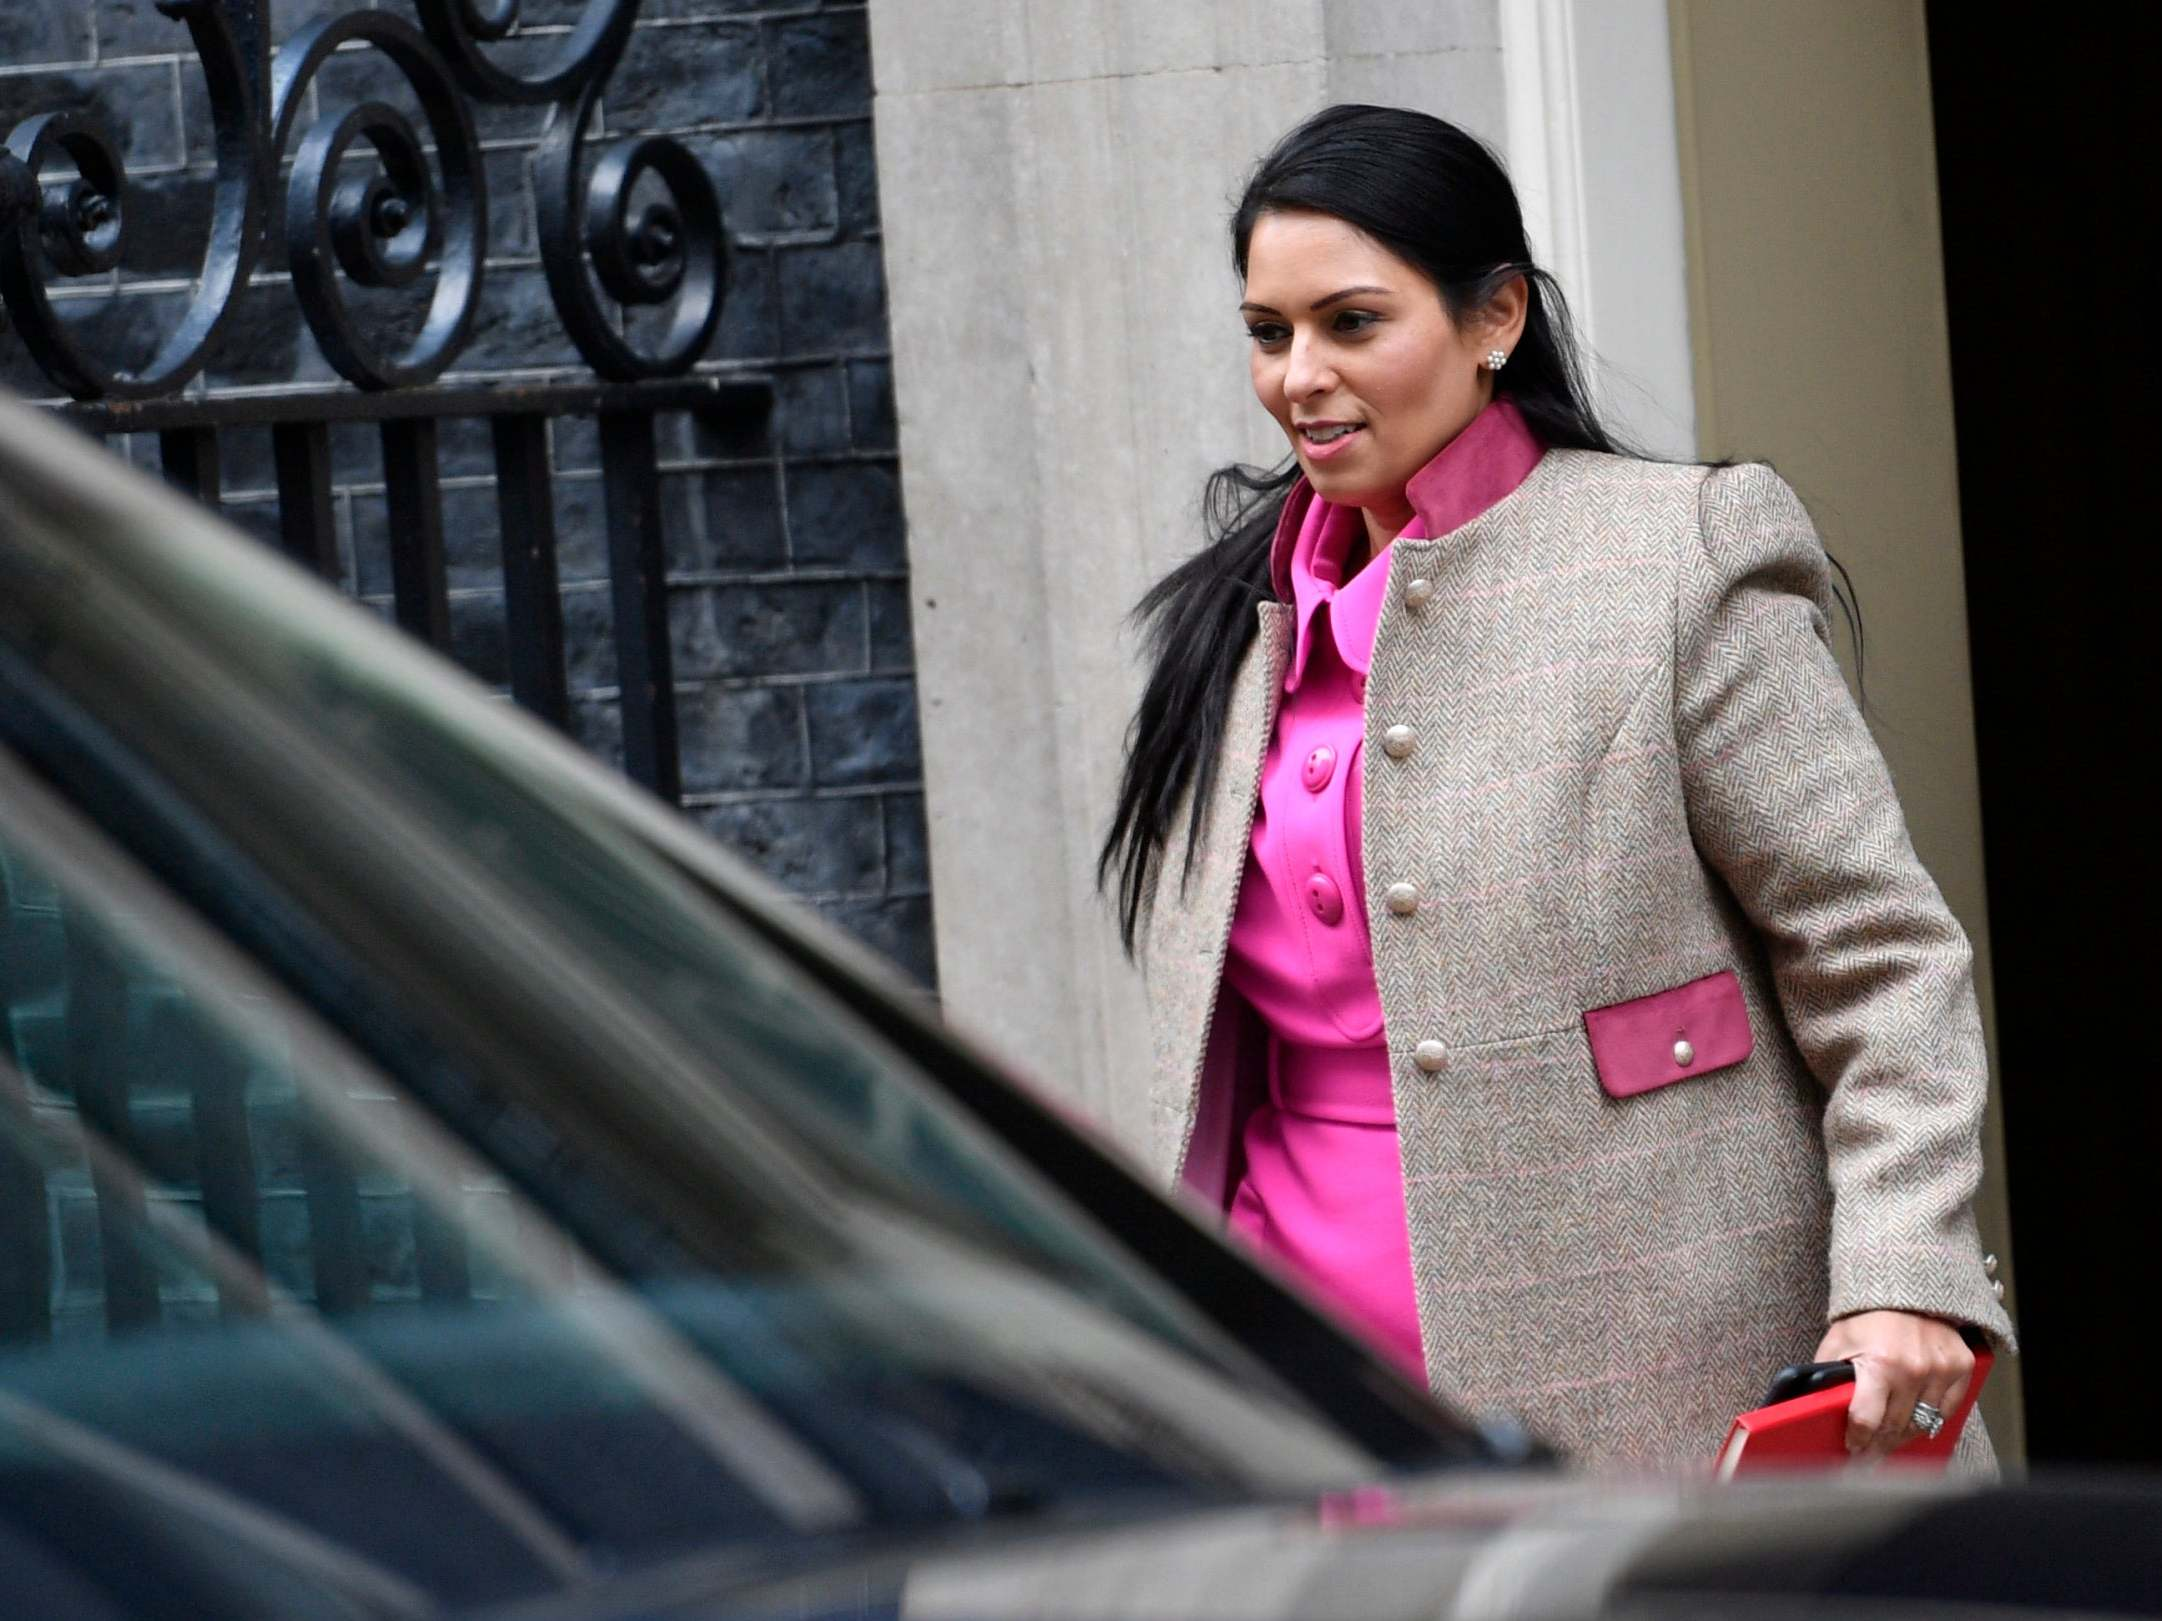 Priti Patel department facing 'tropical storms' amid calls for new bullying investigation, and claims Windrush report watered down - follow live